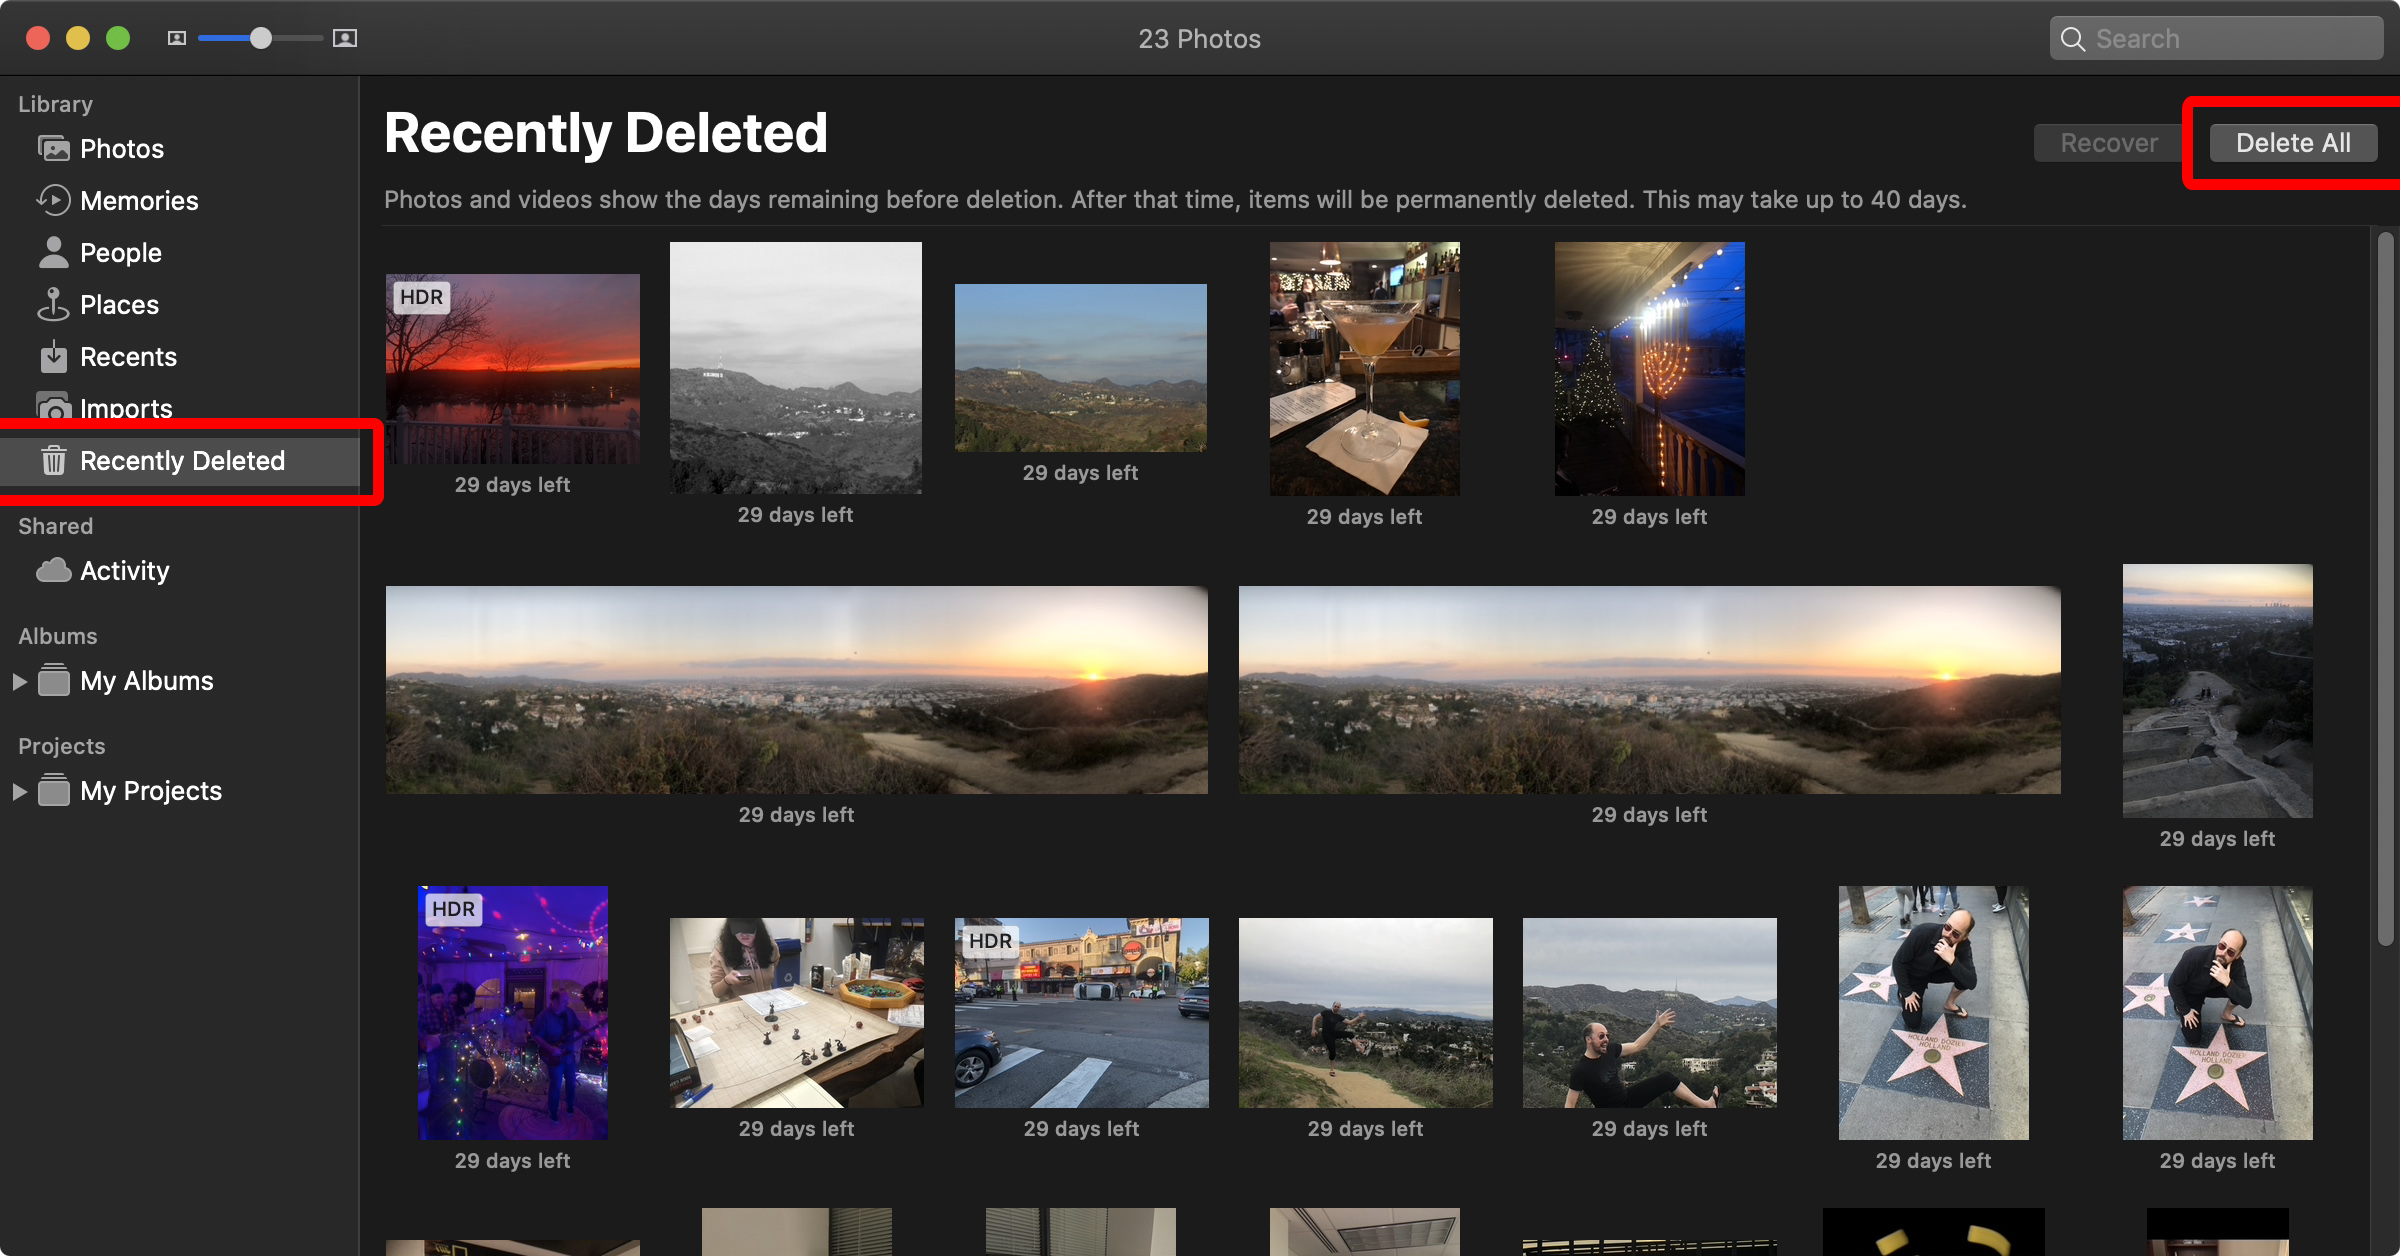 How to Delete Photos from iCloud photos app